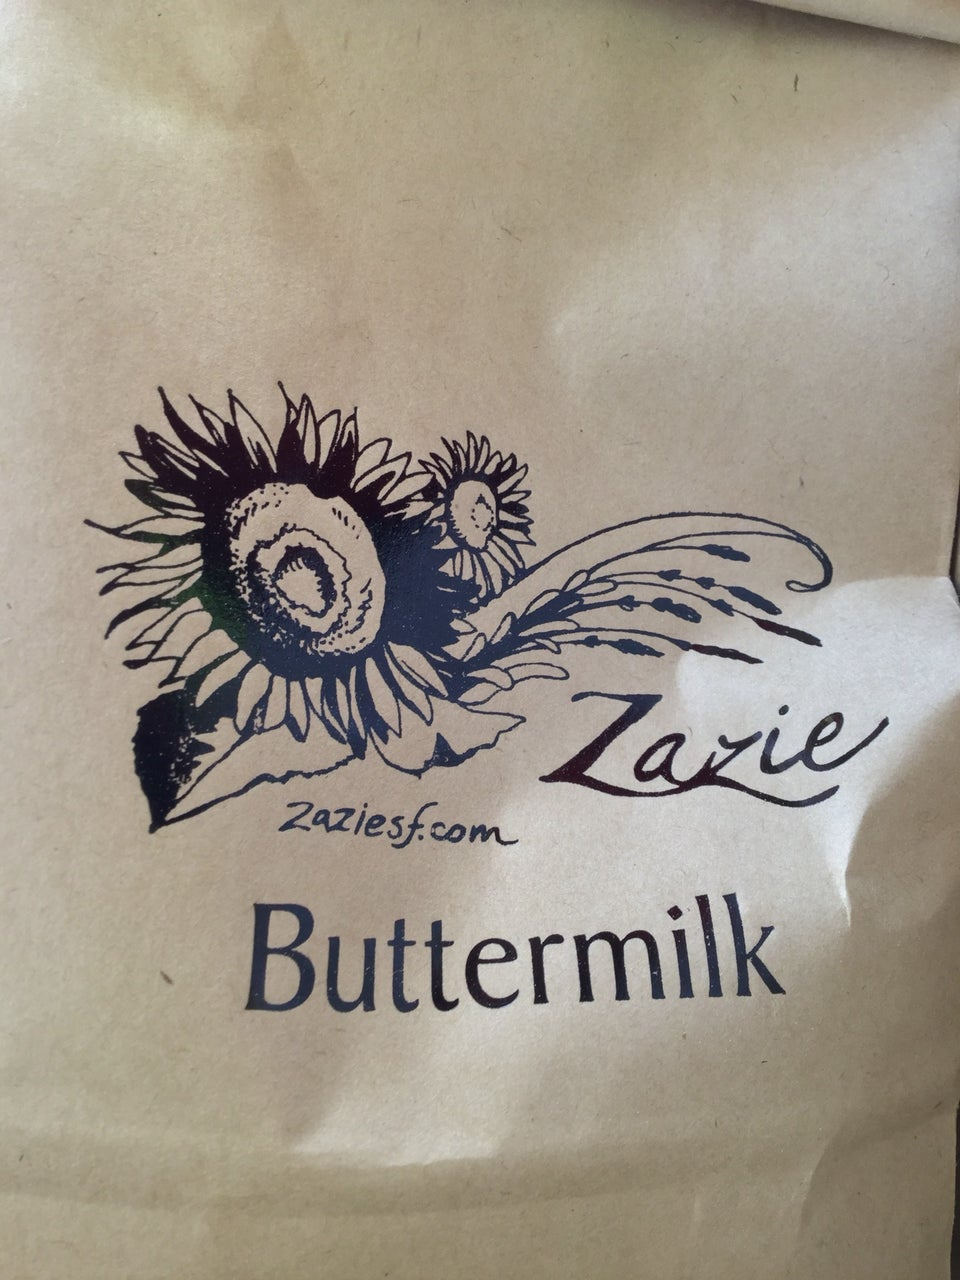 Bag of Zazie buttermilk pancake mix, with a stylized black & white graphic of sunflowers, Zazie, website, and Buttermilk text on the bag.